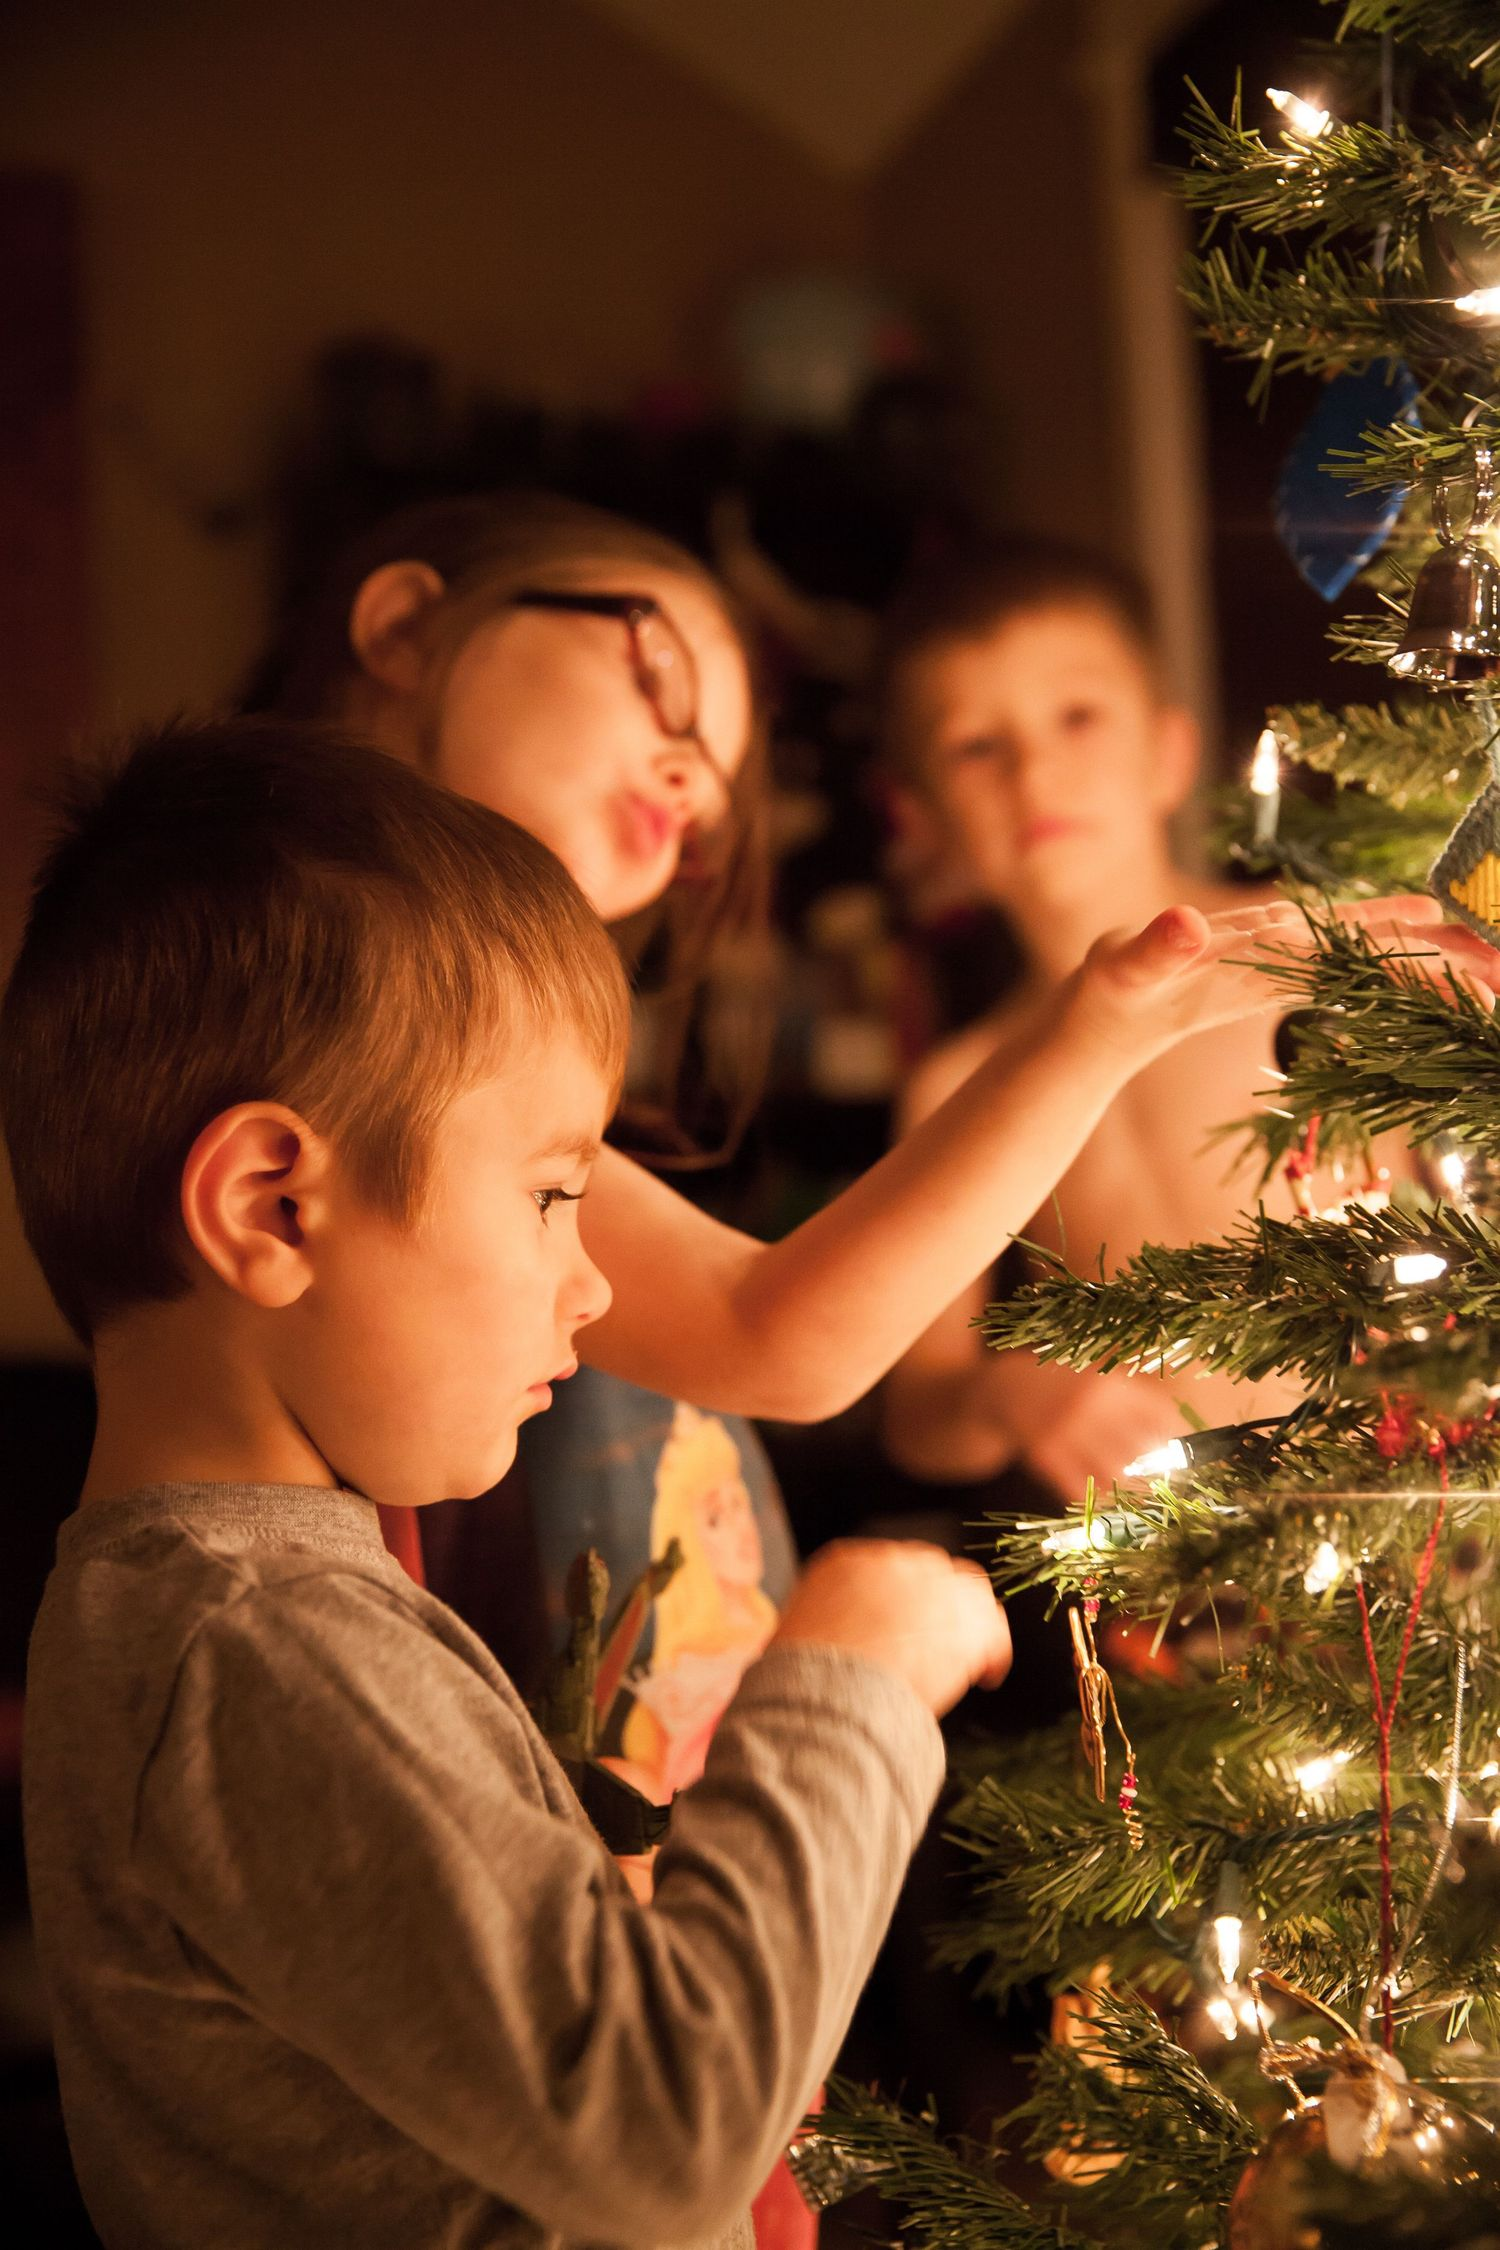 three kids gathered around a Christmas tree